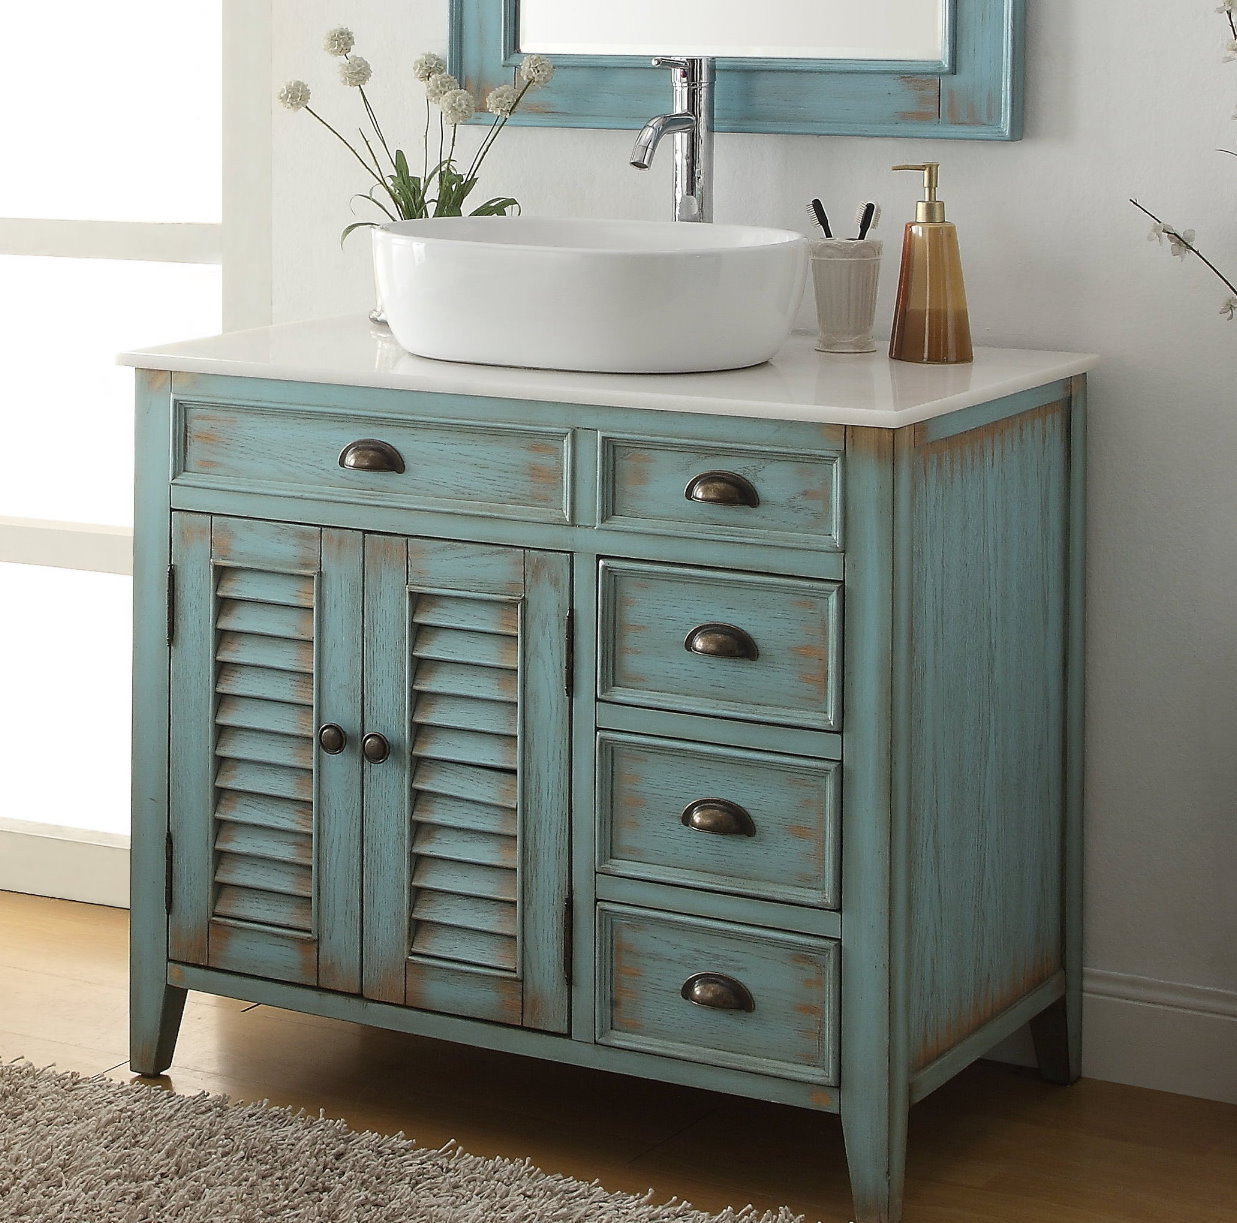 "Dresser Bathroom Vanity  36"" inch Bathroom Vanity Coastal Beach Style White Vessel"